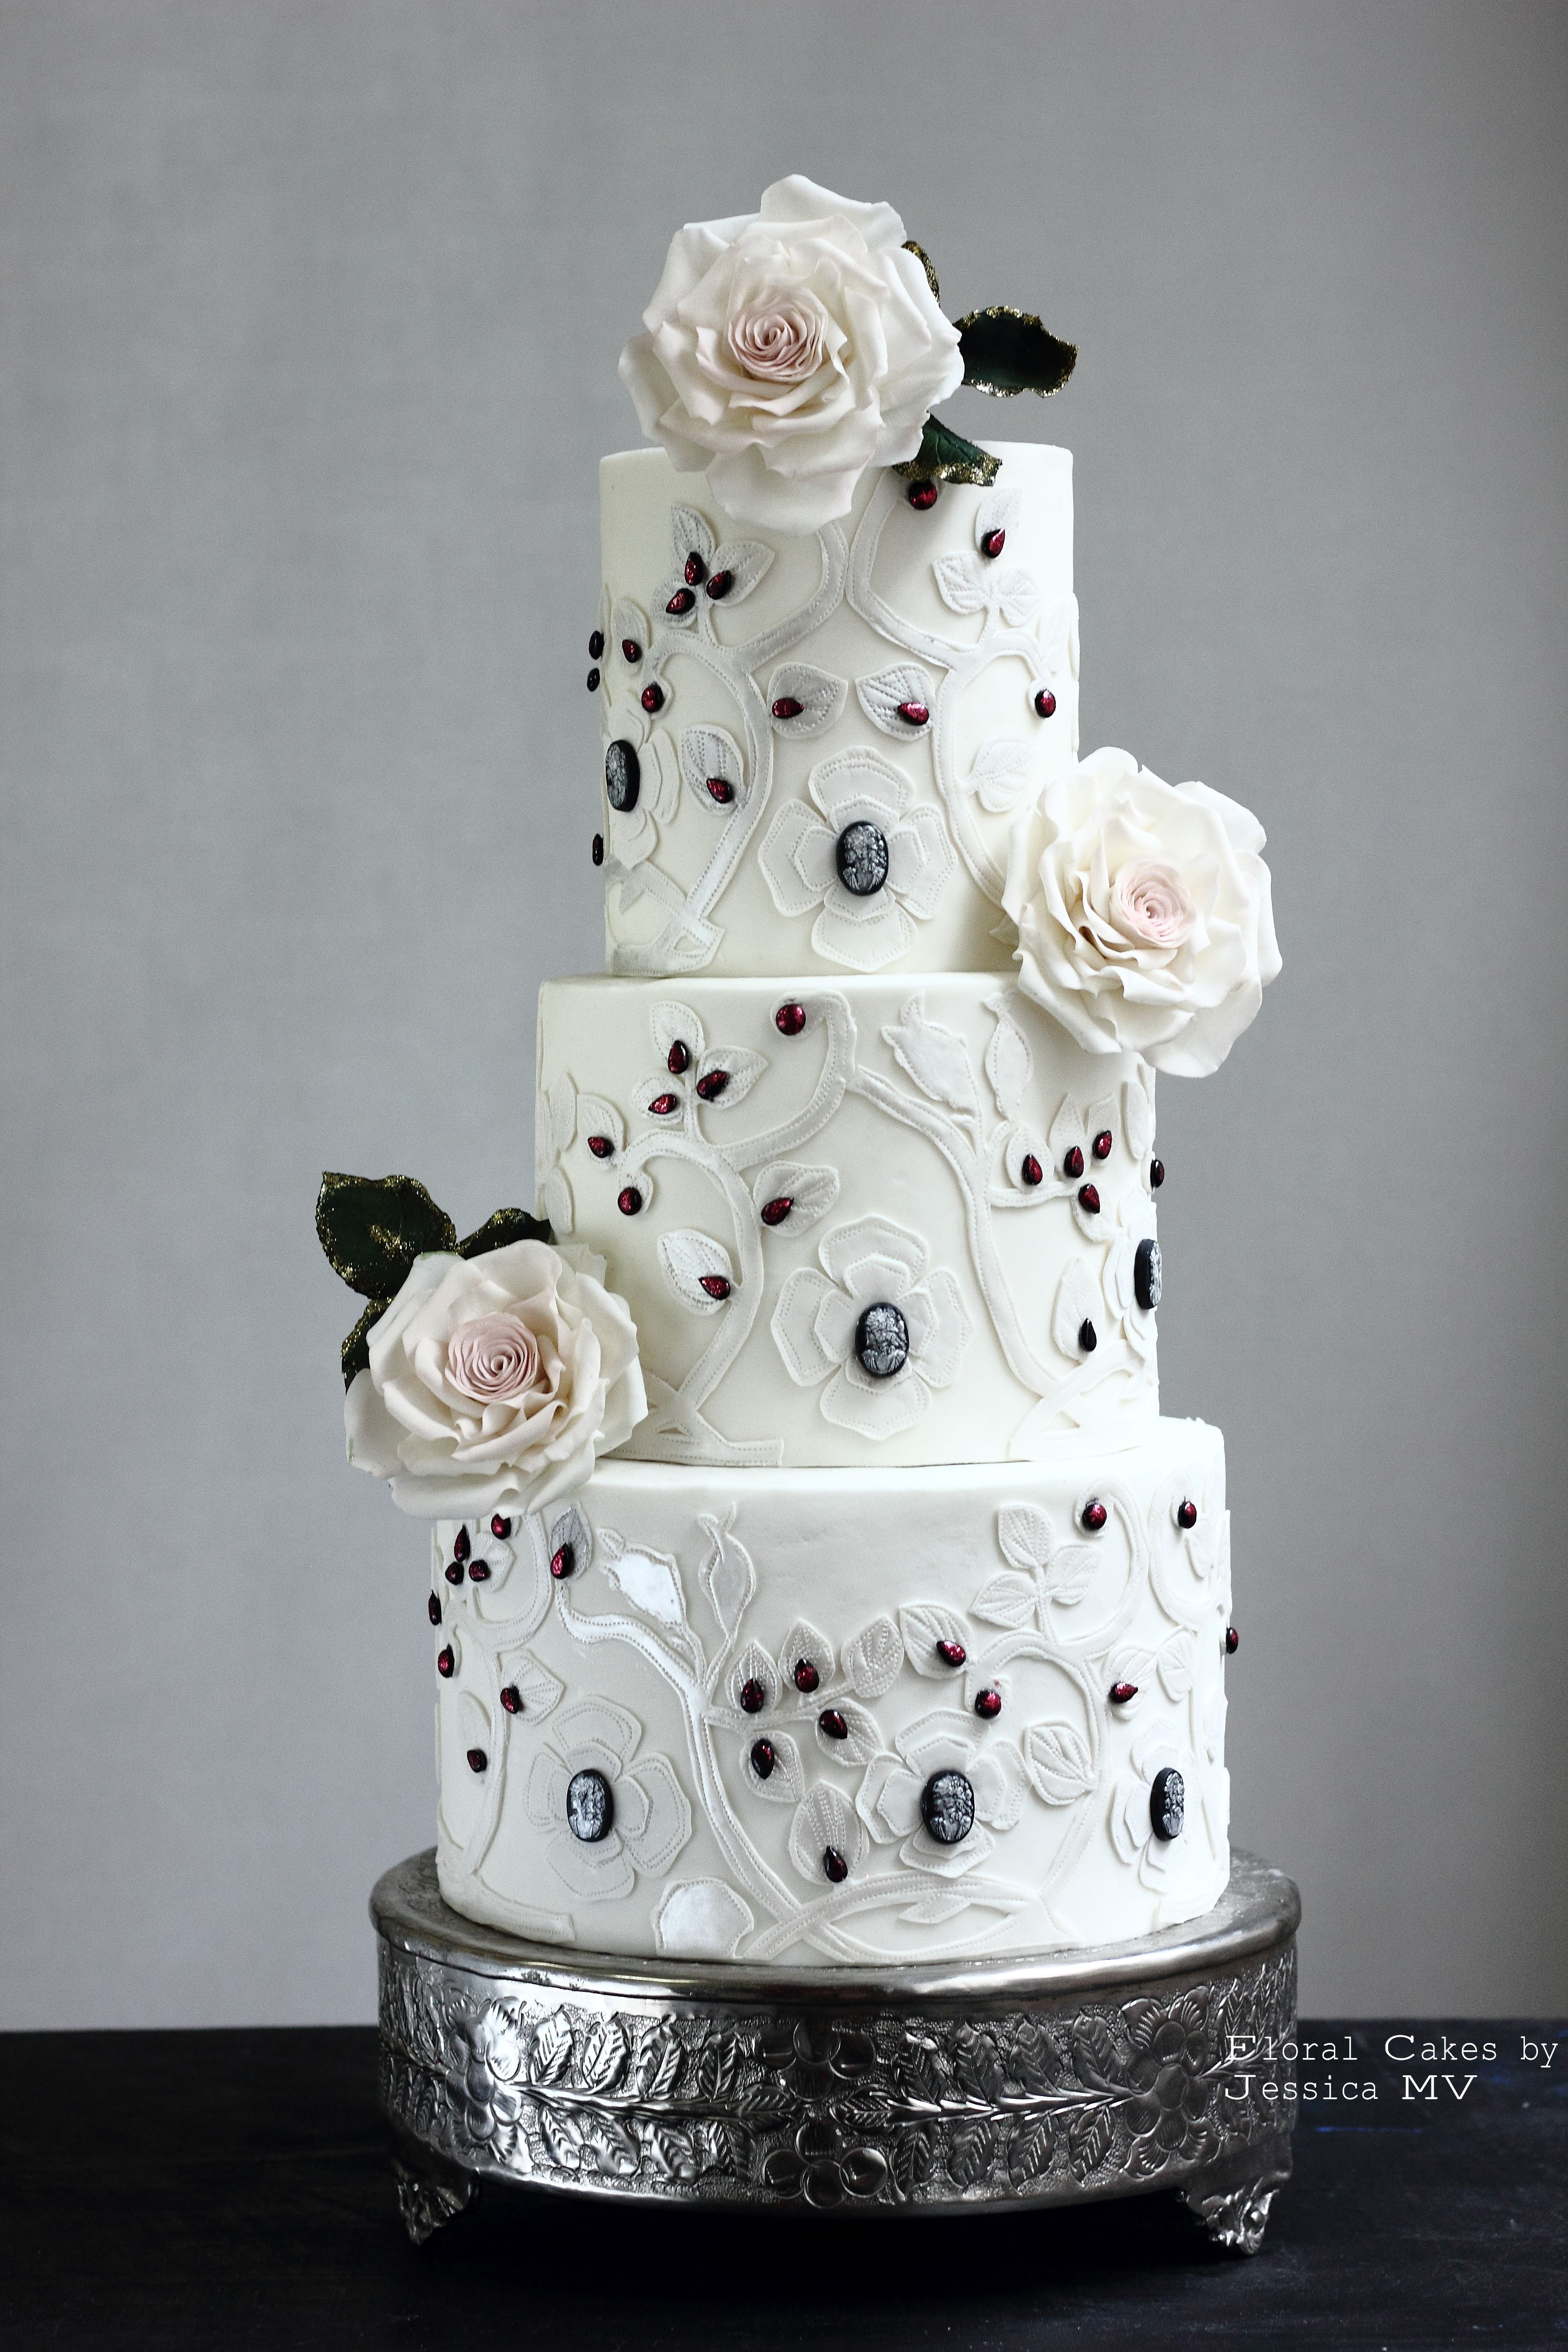 White wedding cake with black accents and sugar roses